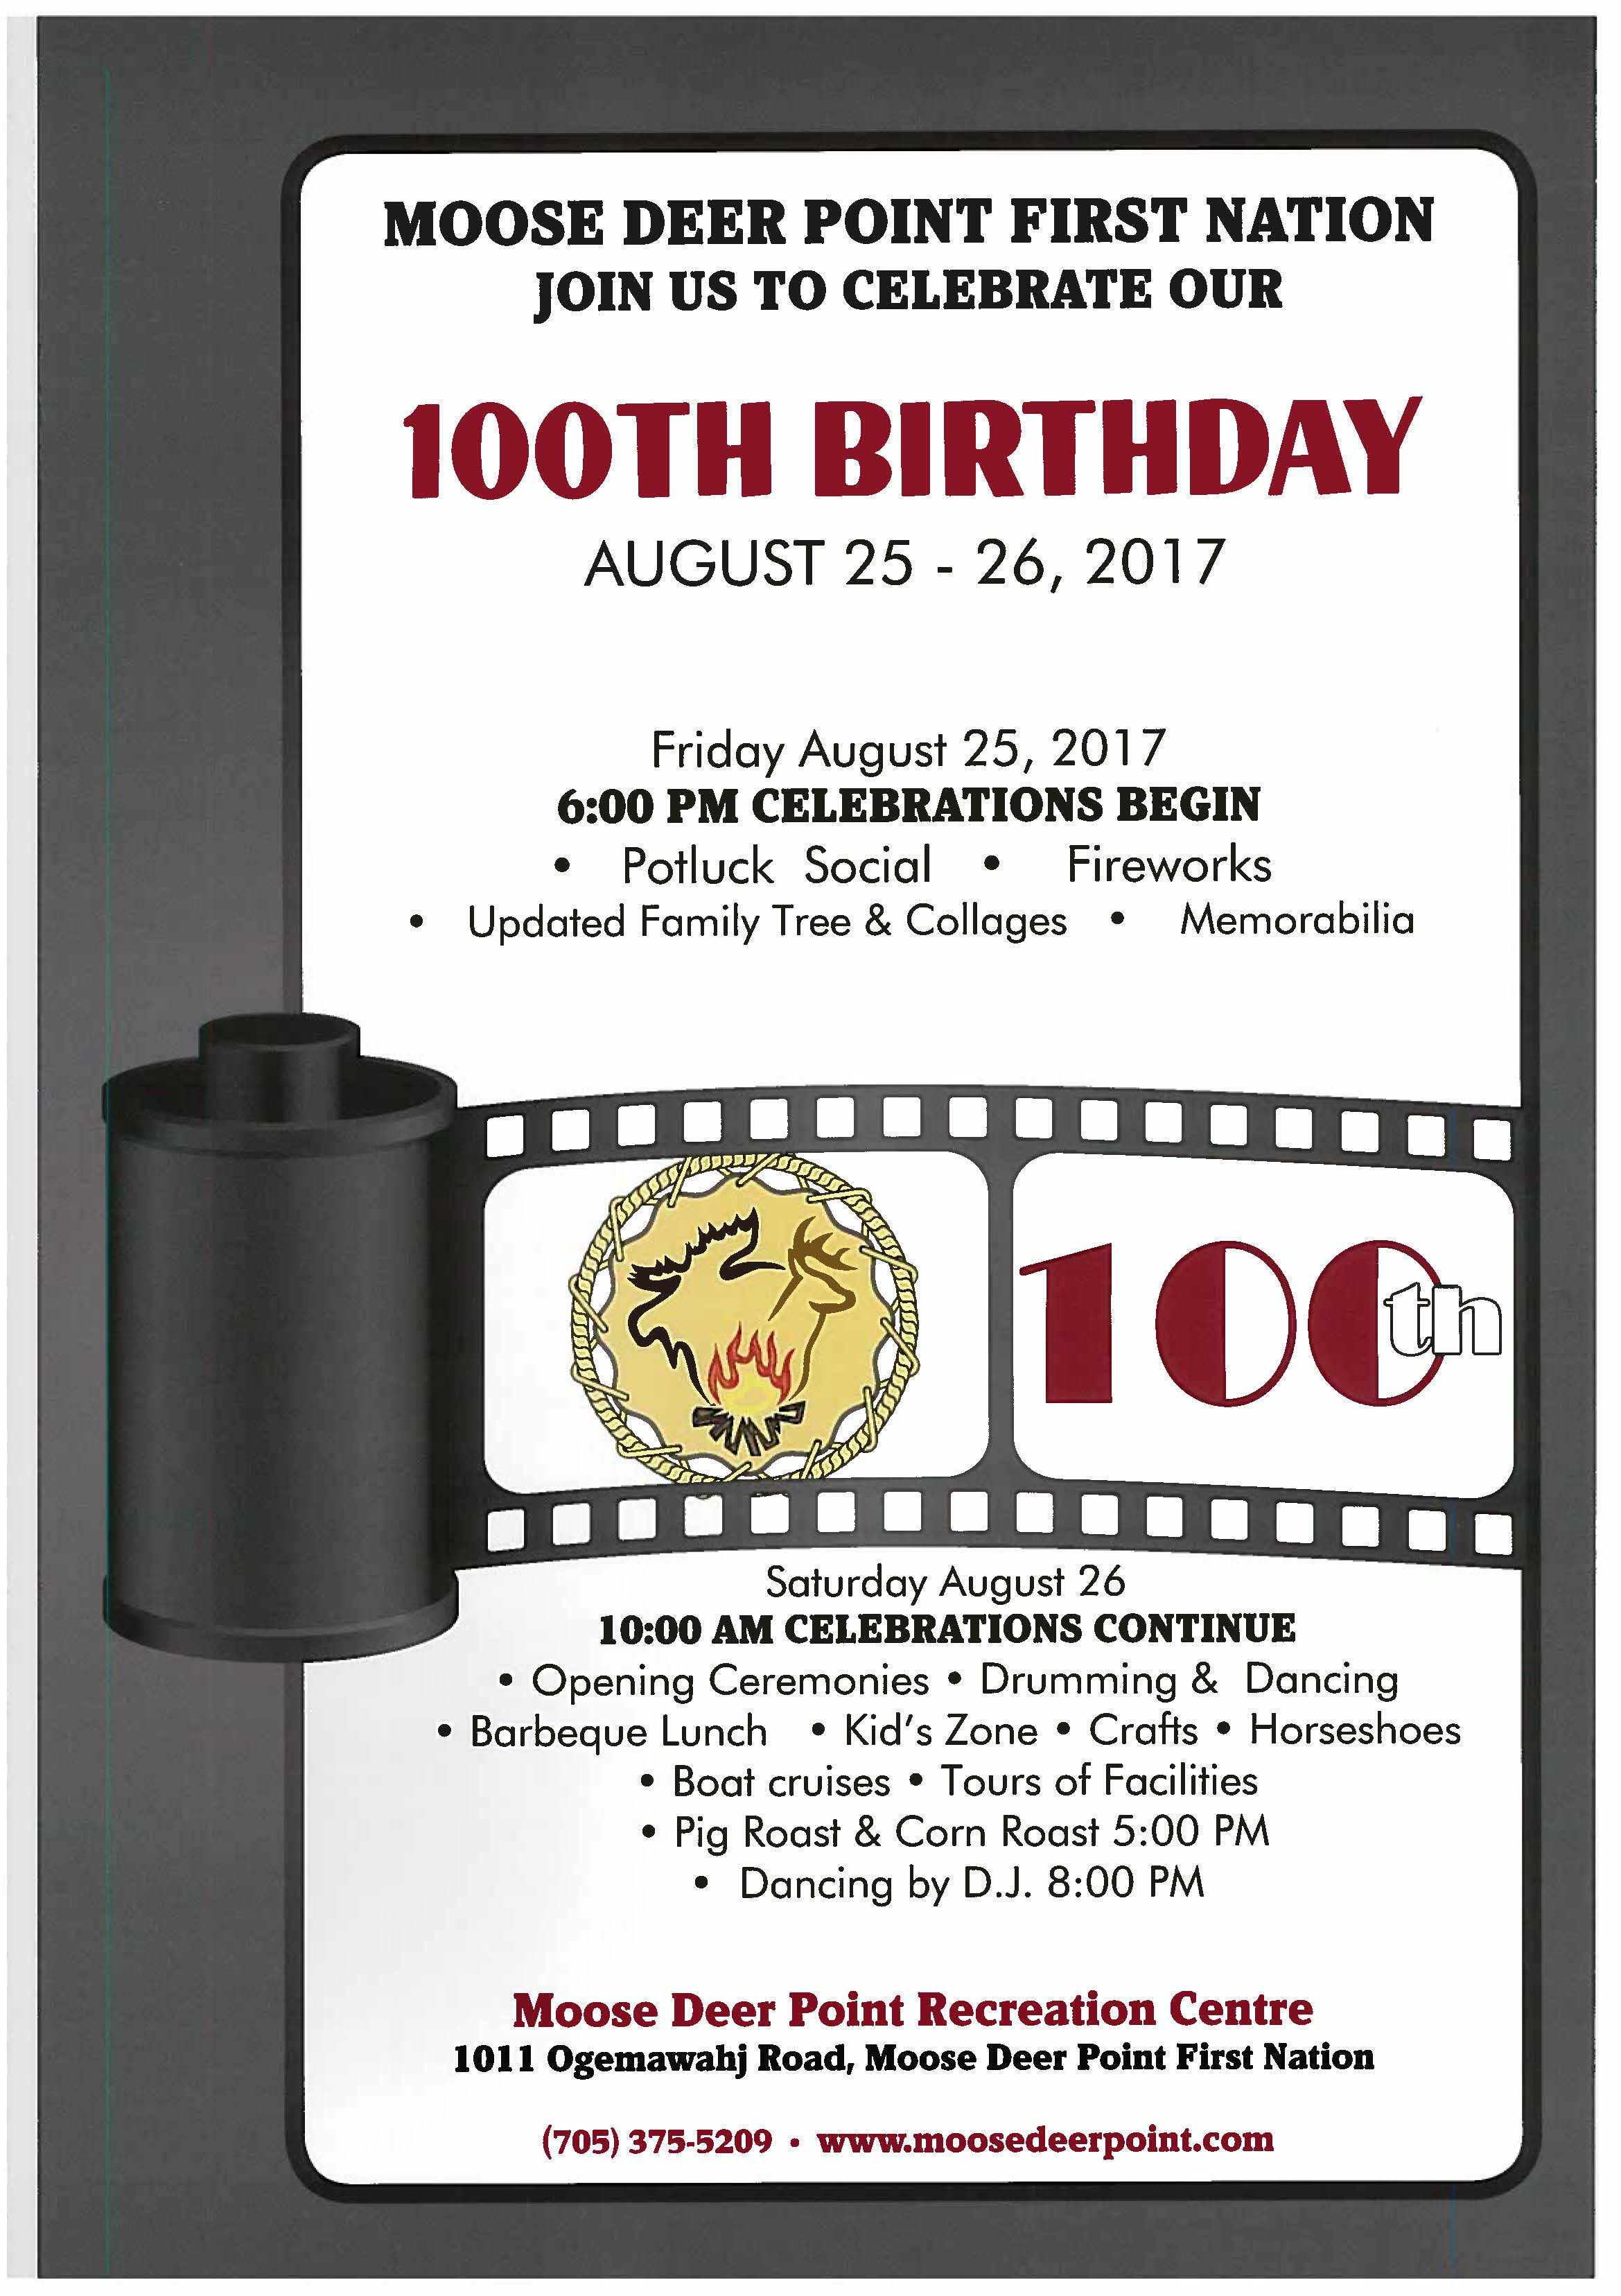 Moose Deer Point First Nation – Join us to Celebrate our 100th Birthday!